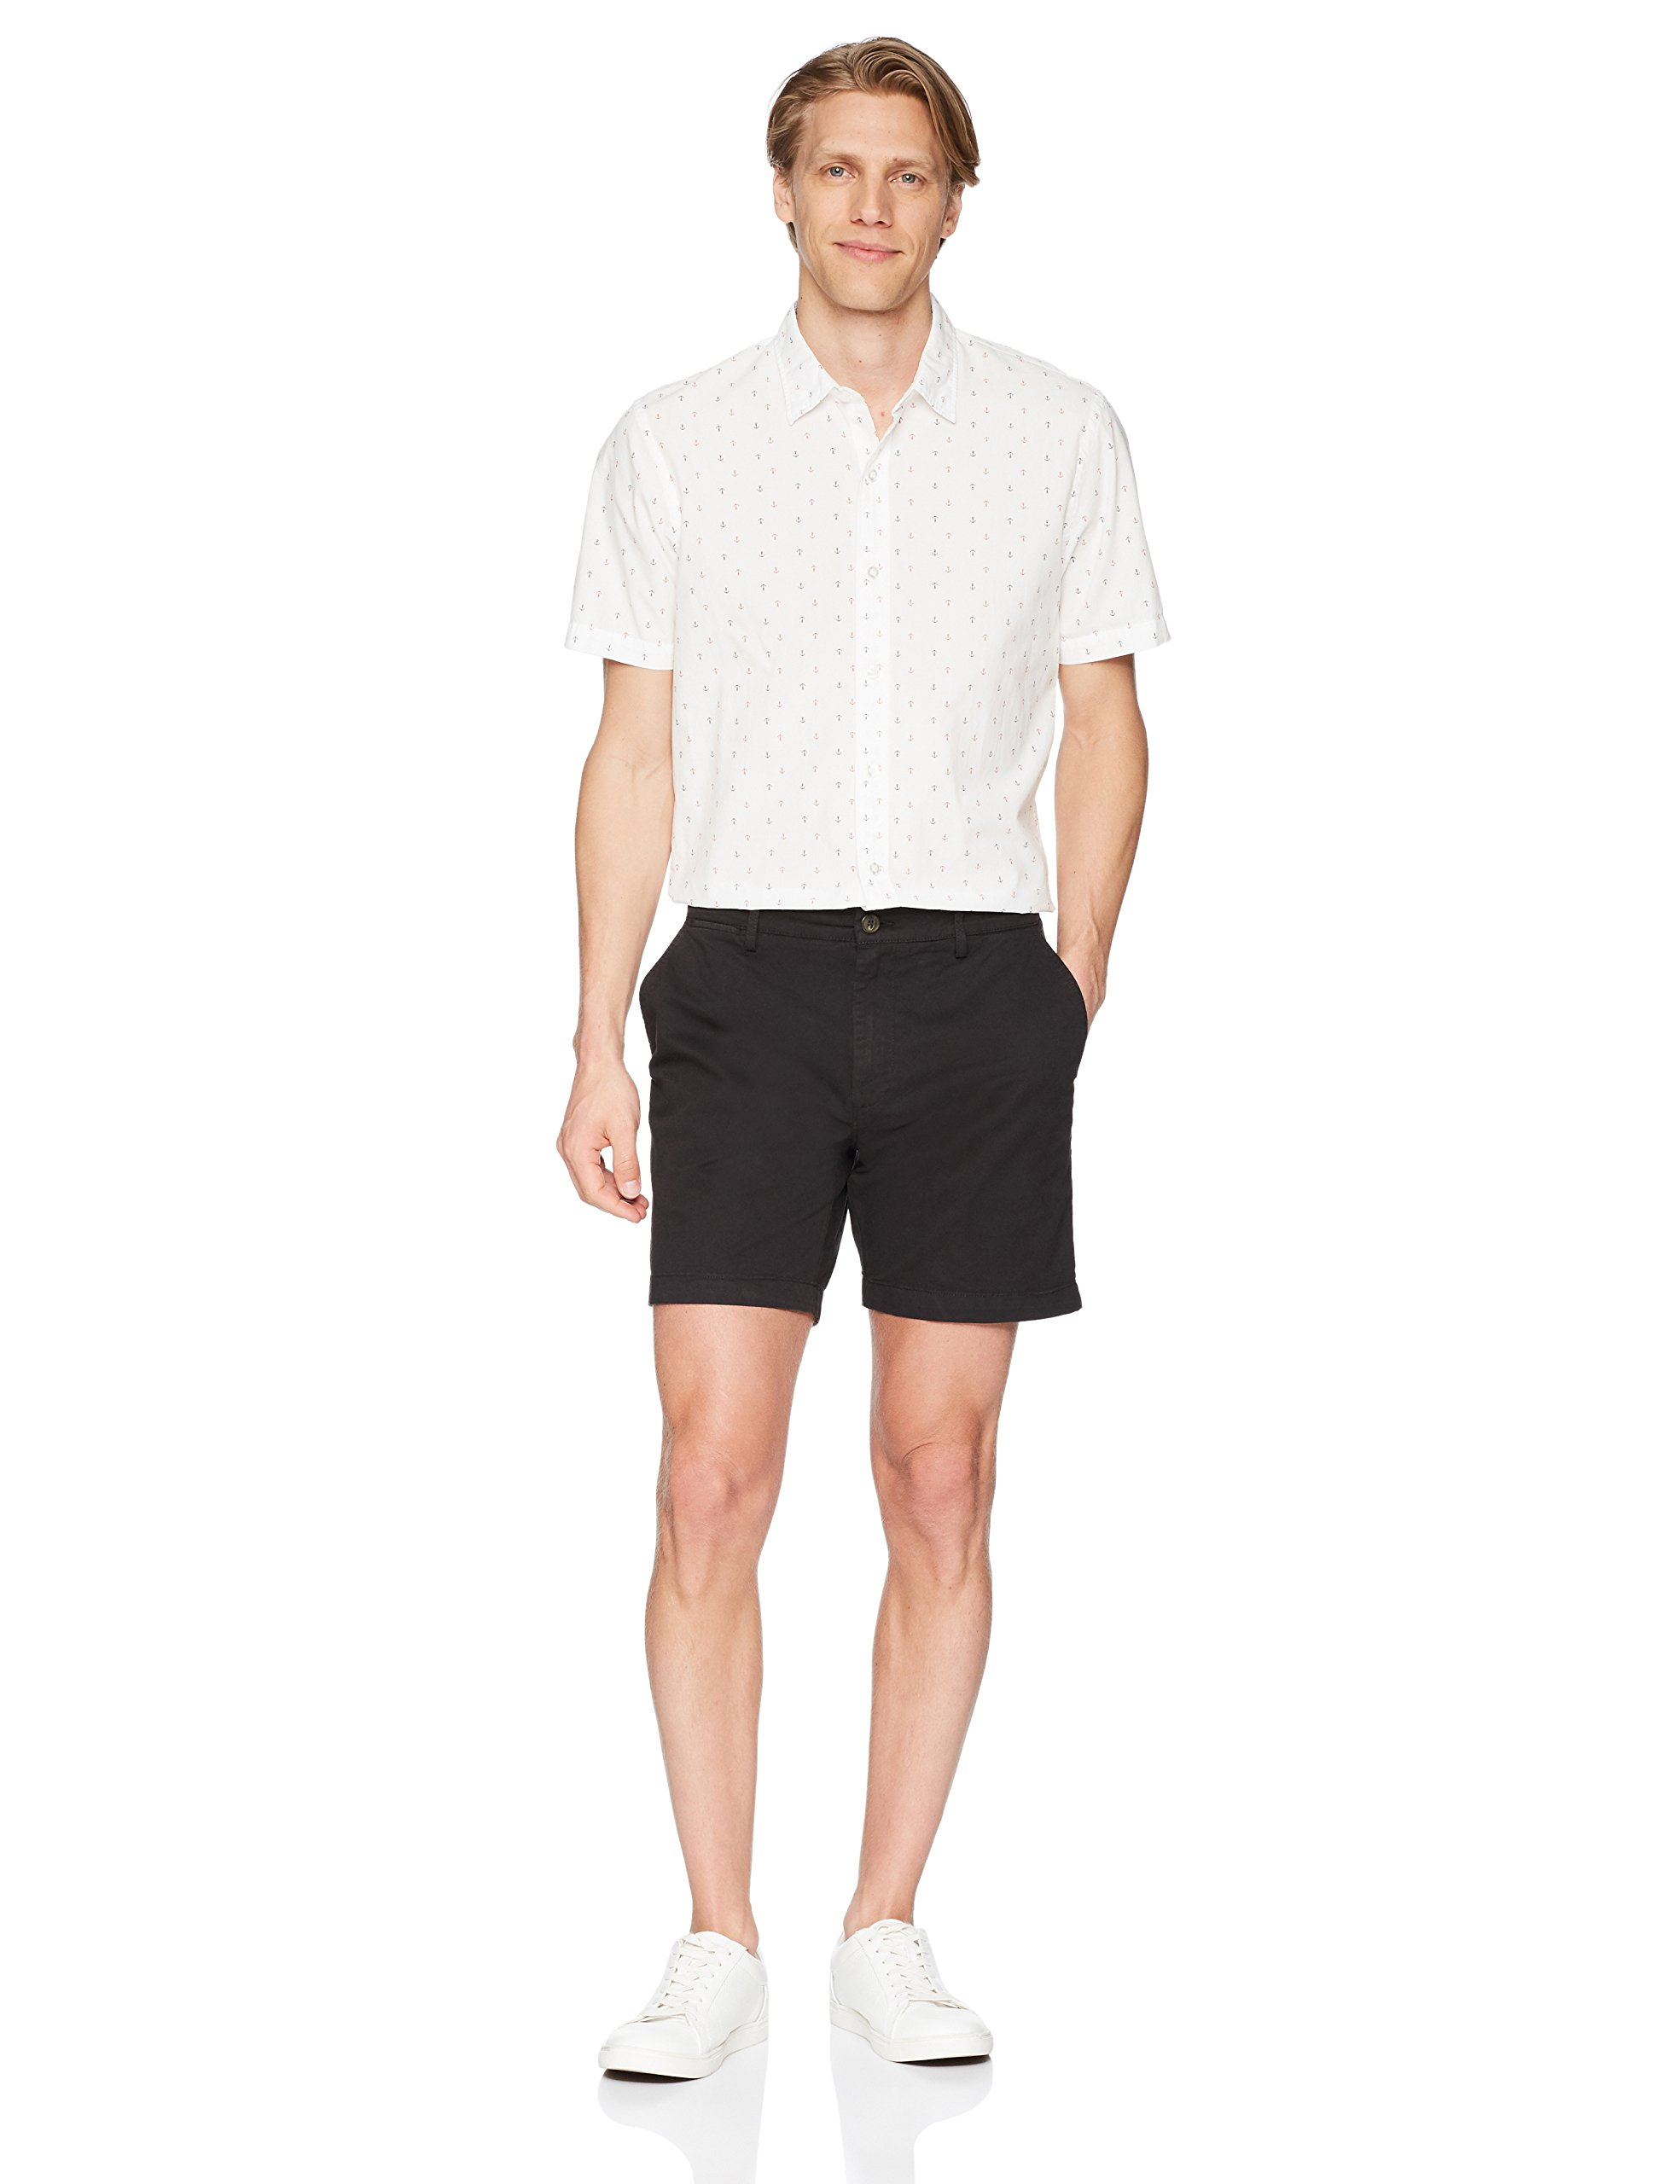 Goodthreads Men's 7'' Inseam Flat-Front Stretch Chino Short, Black, 32 by Goodthreads (Image #2)